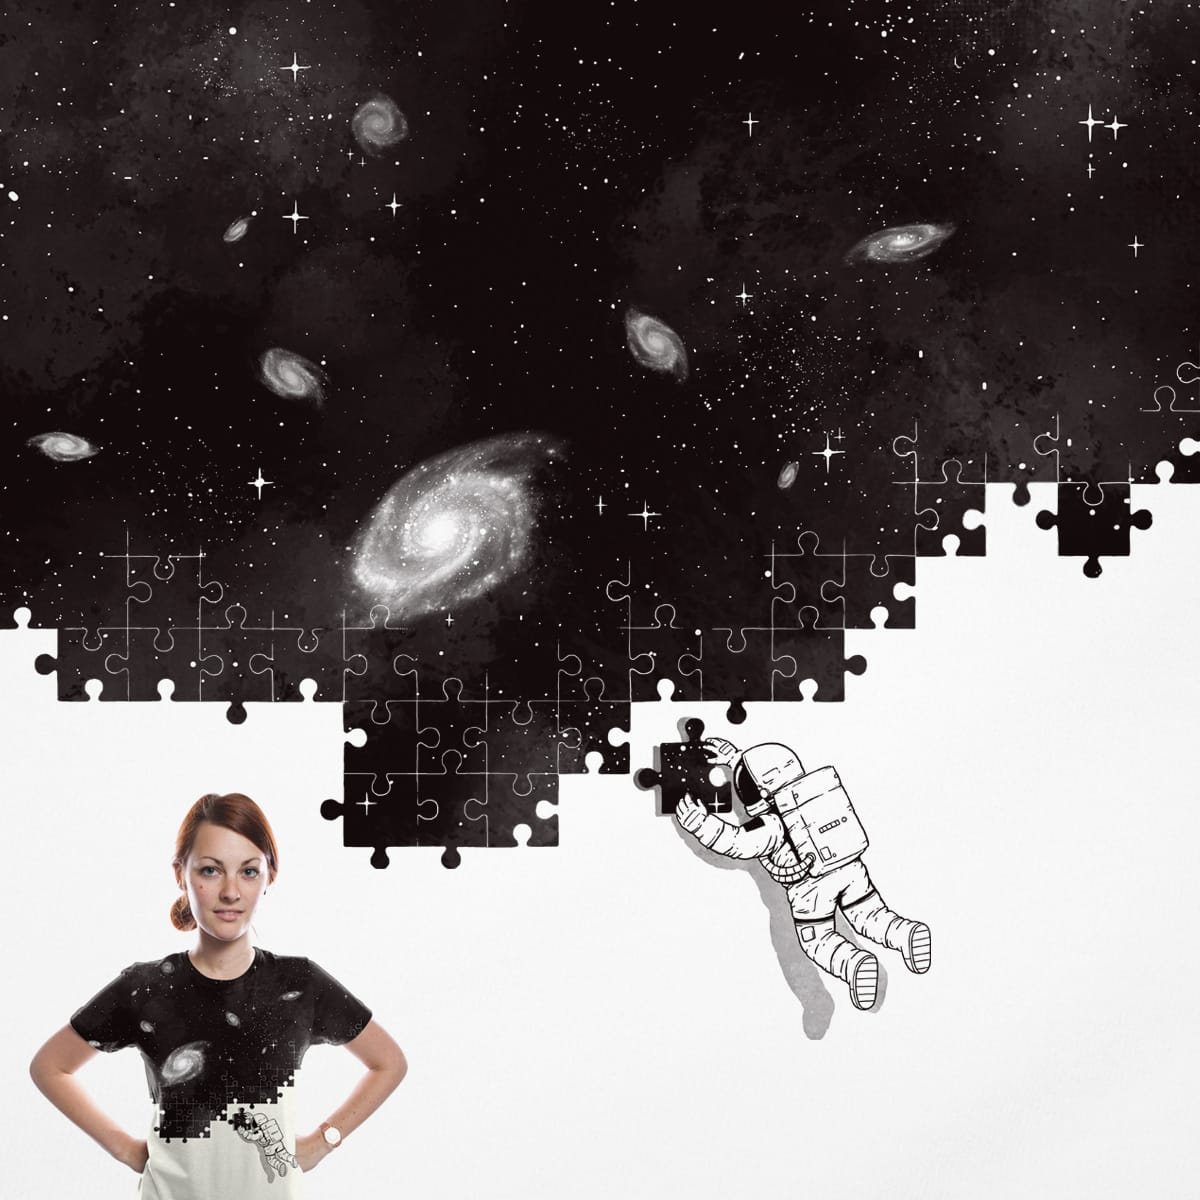 SOLVING THE BIG PUZZLE by temyongsky on Threadless